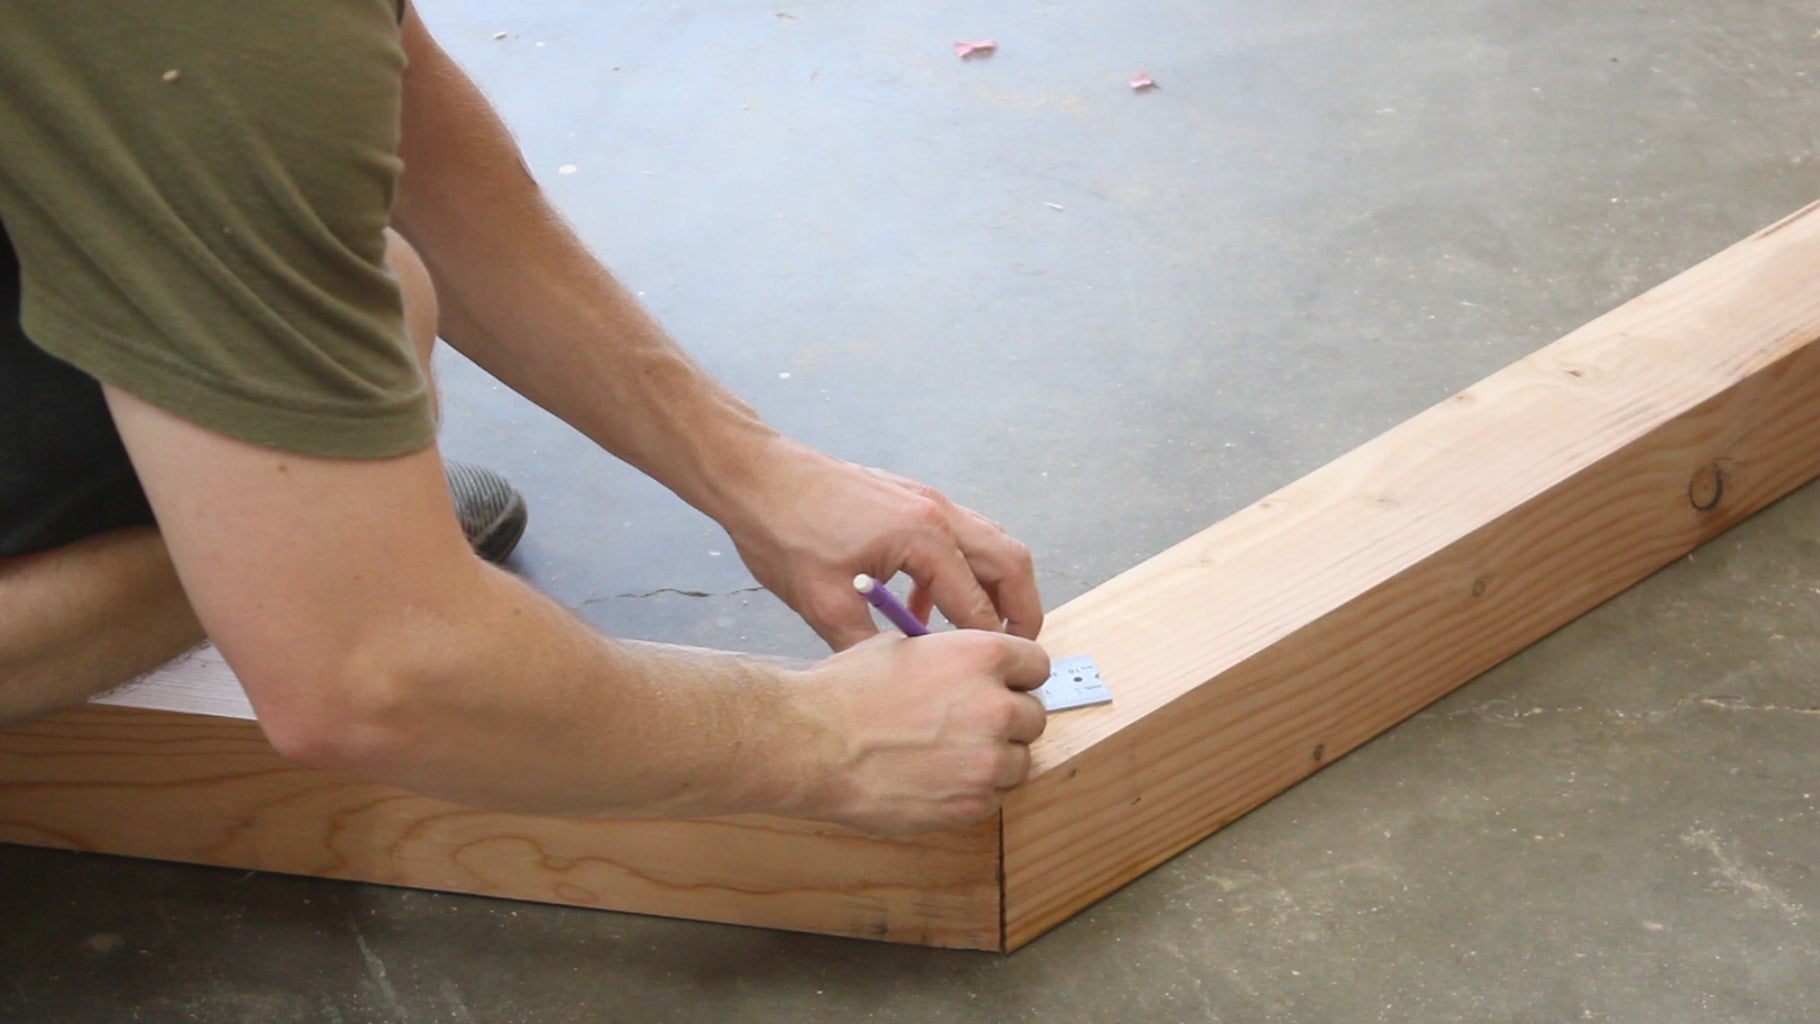 Preparation to Connect the Sides